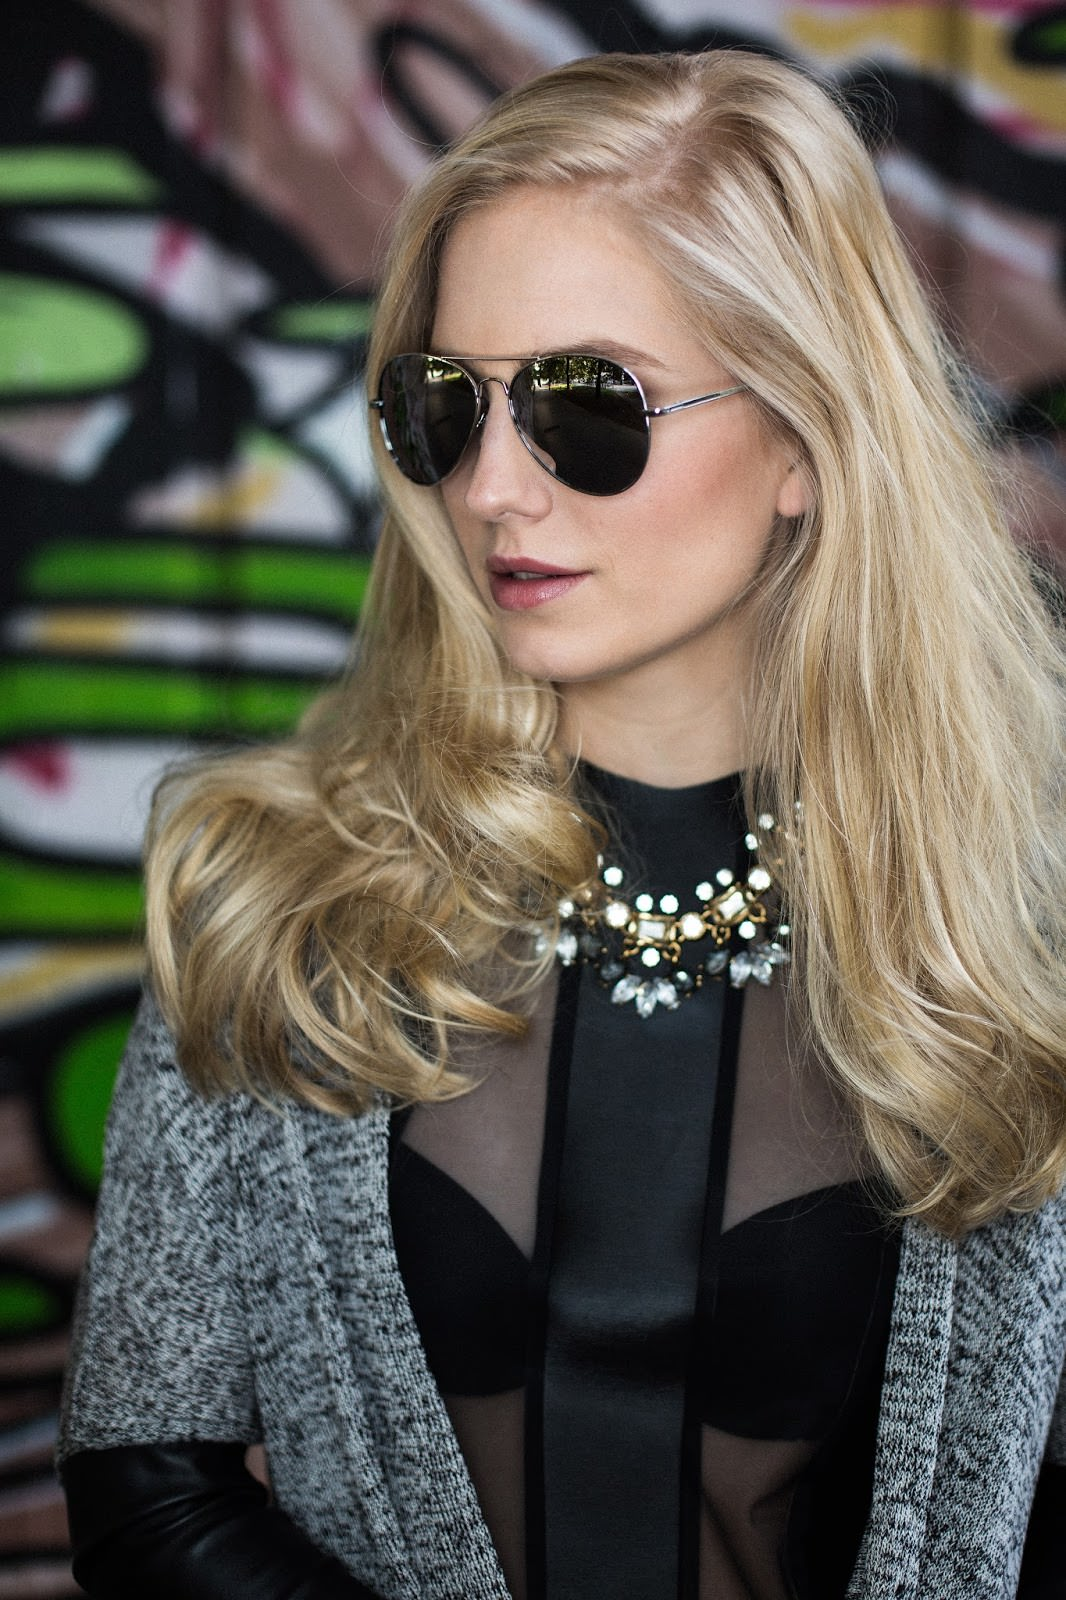 ZeroUV sunglasses fashion blogger